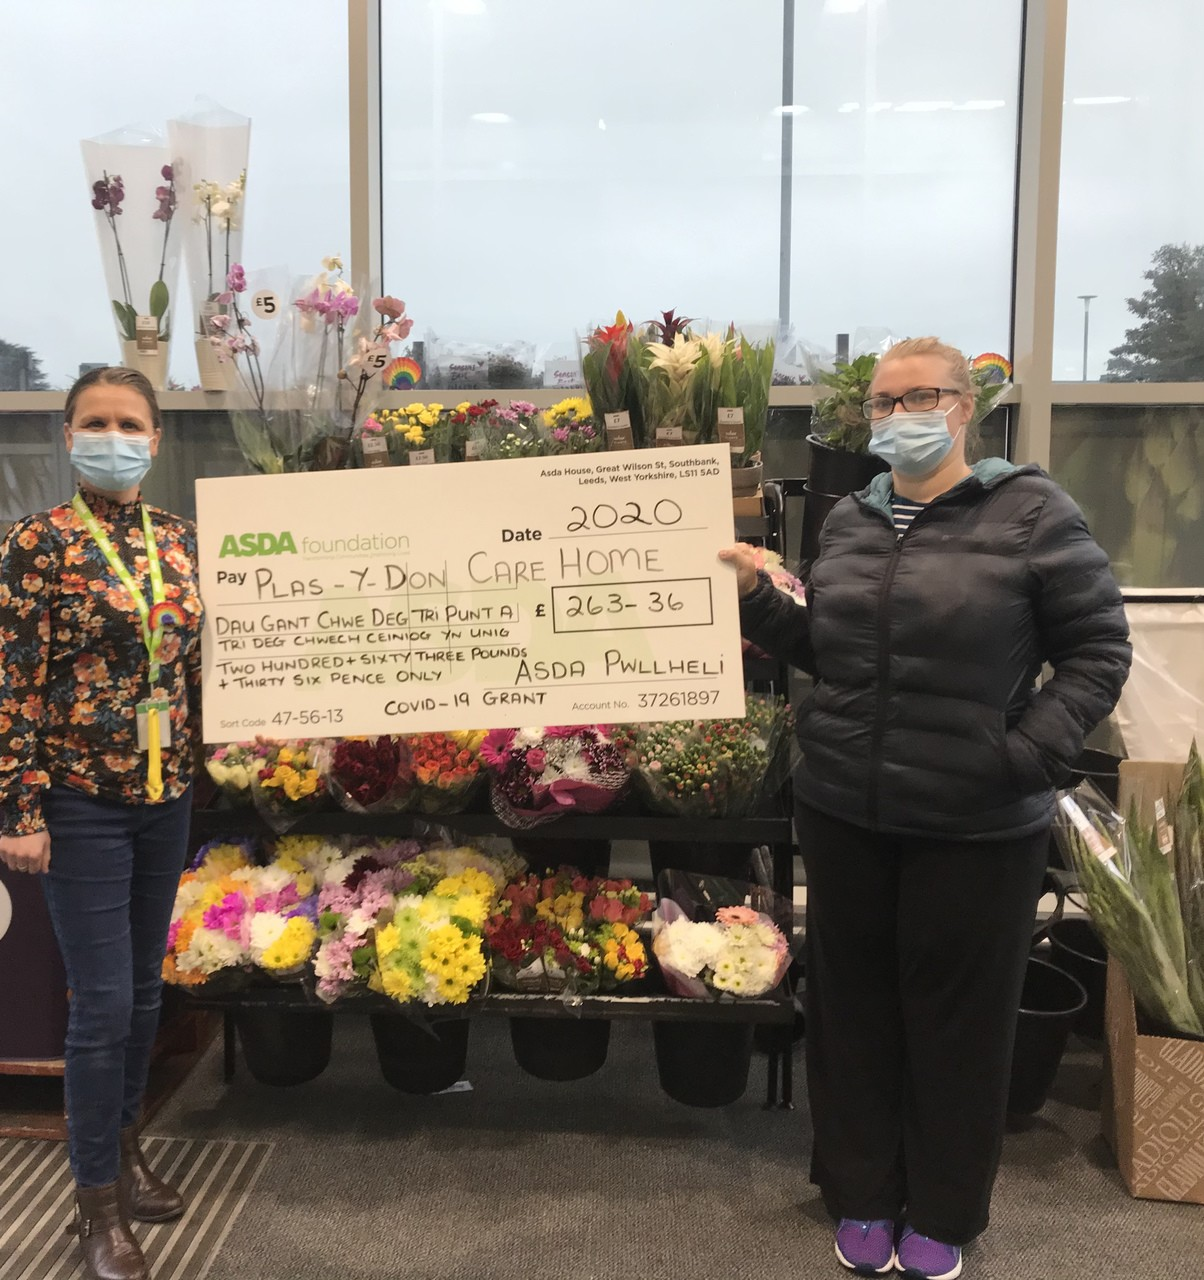 Care home donation | Asda Pwllheli